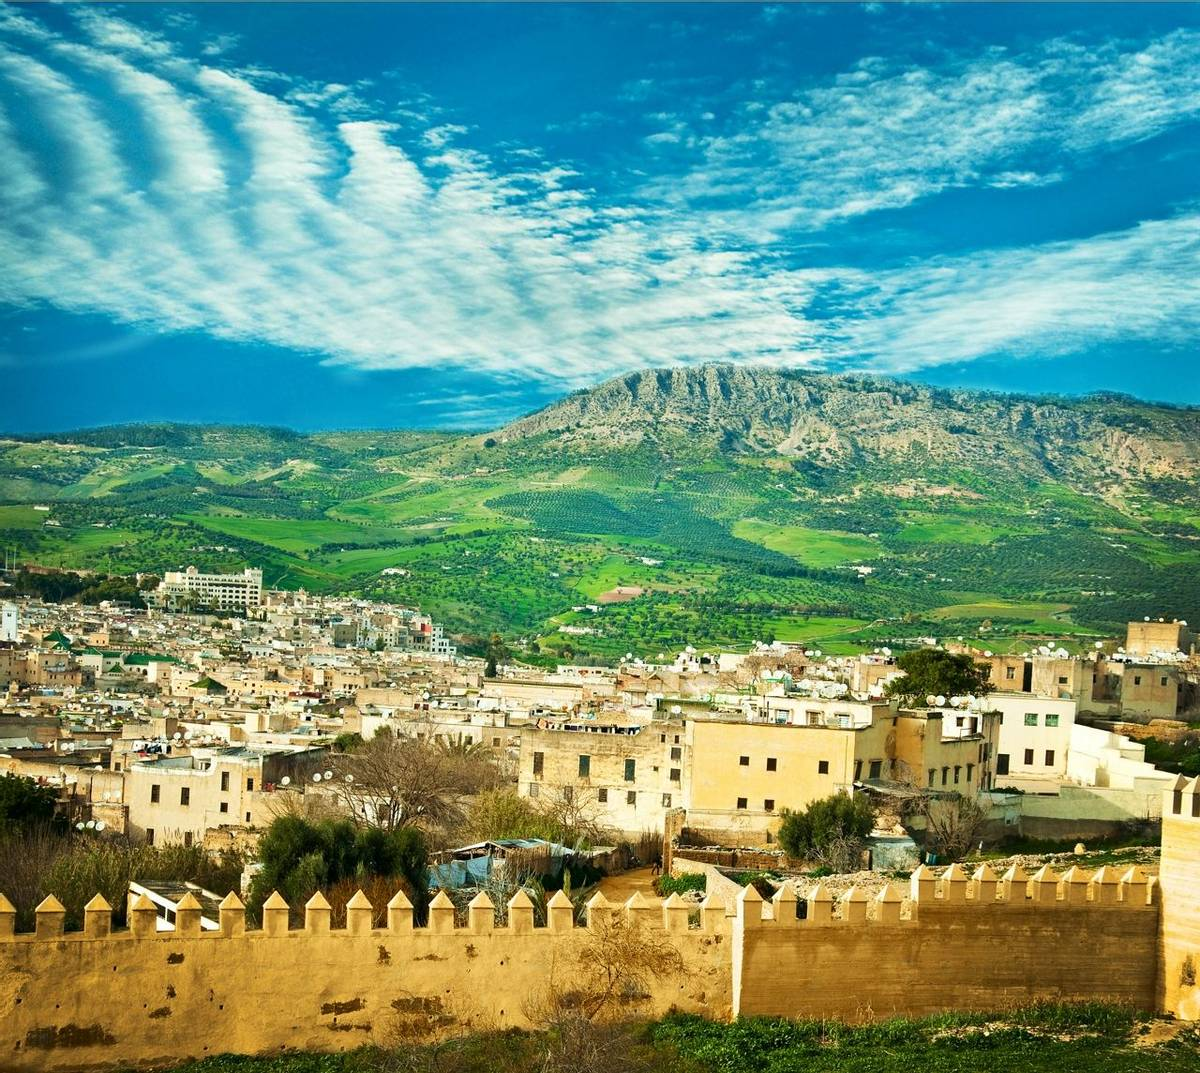 Morocco, a landscape of a city wall in the city of Fes